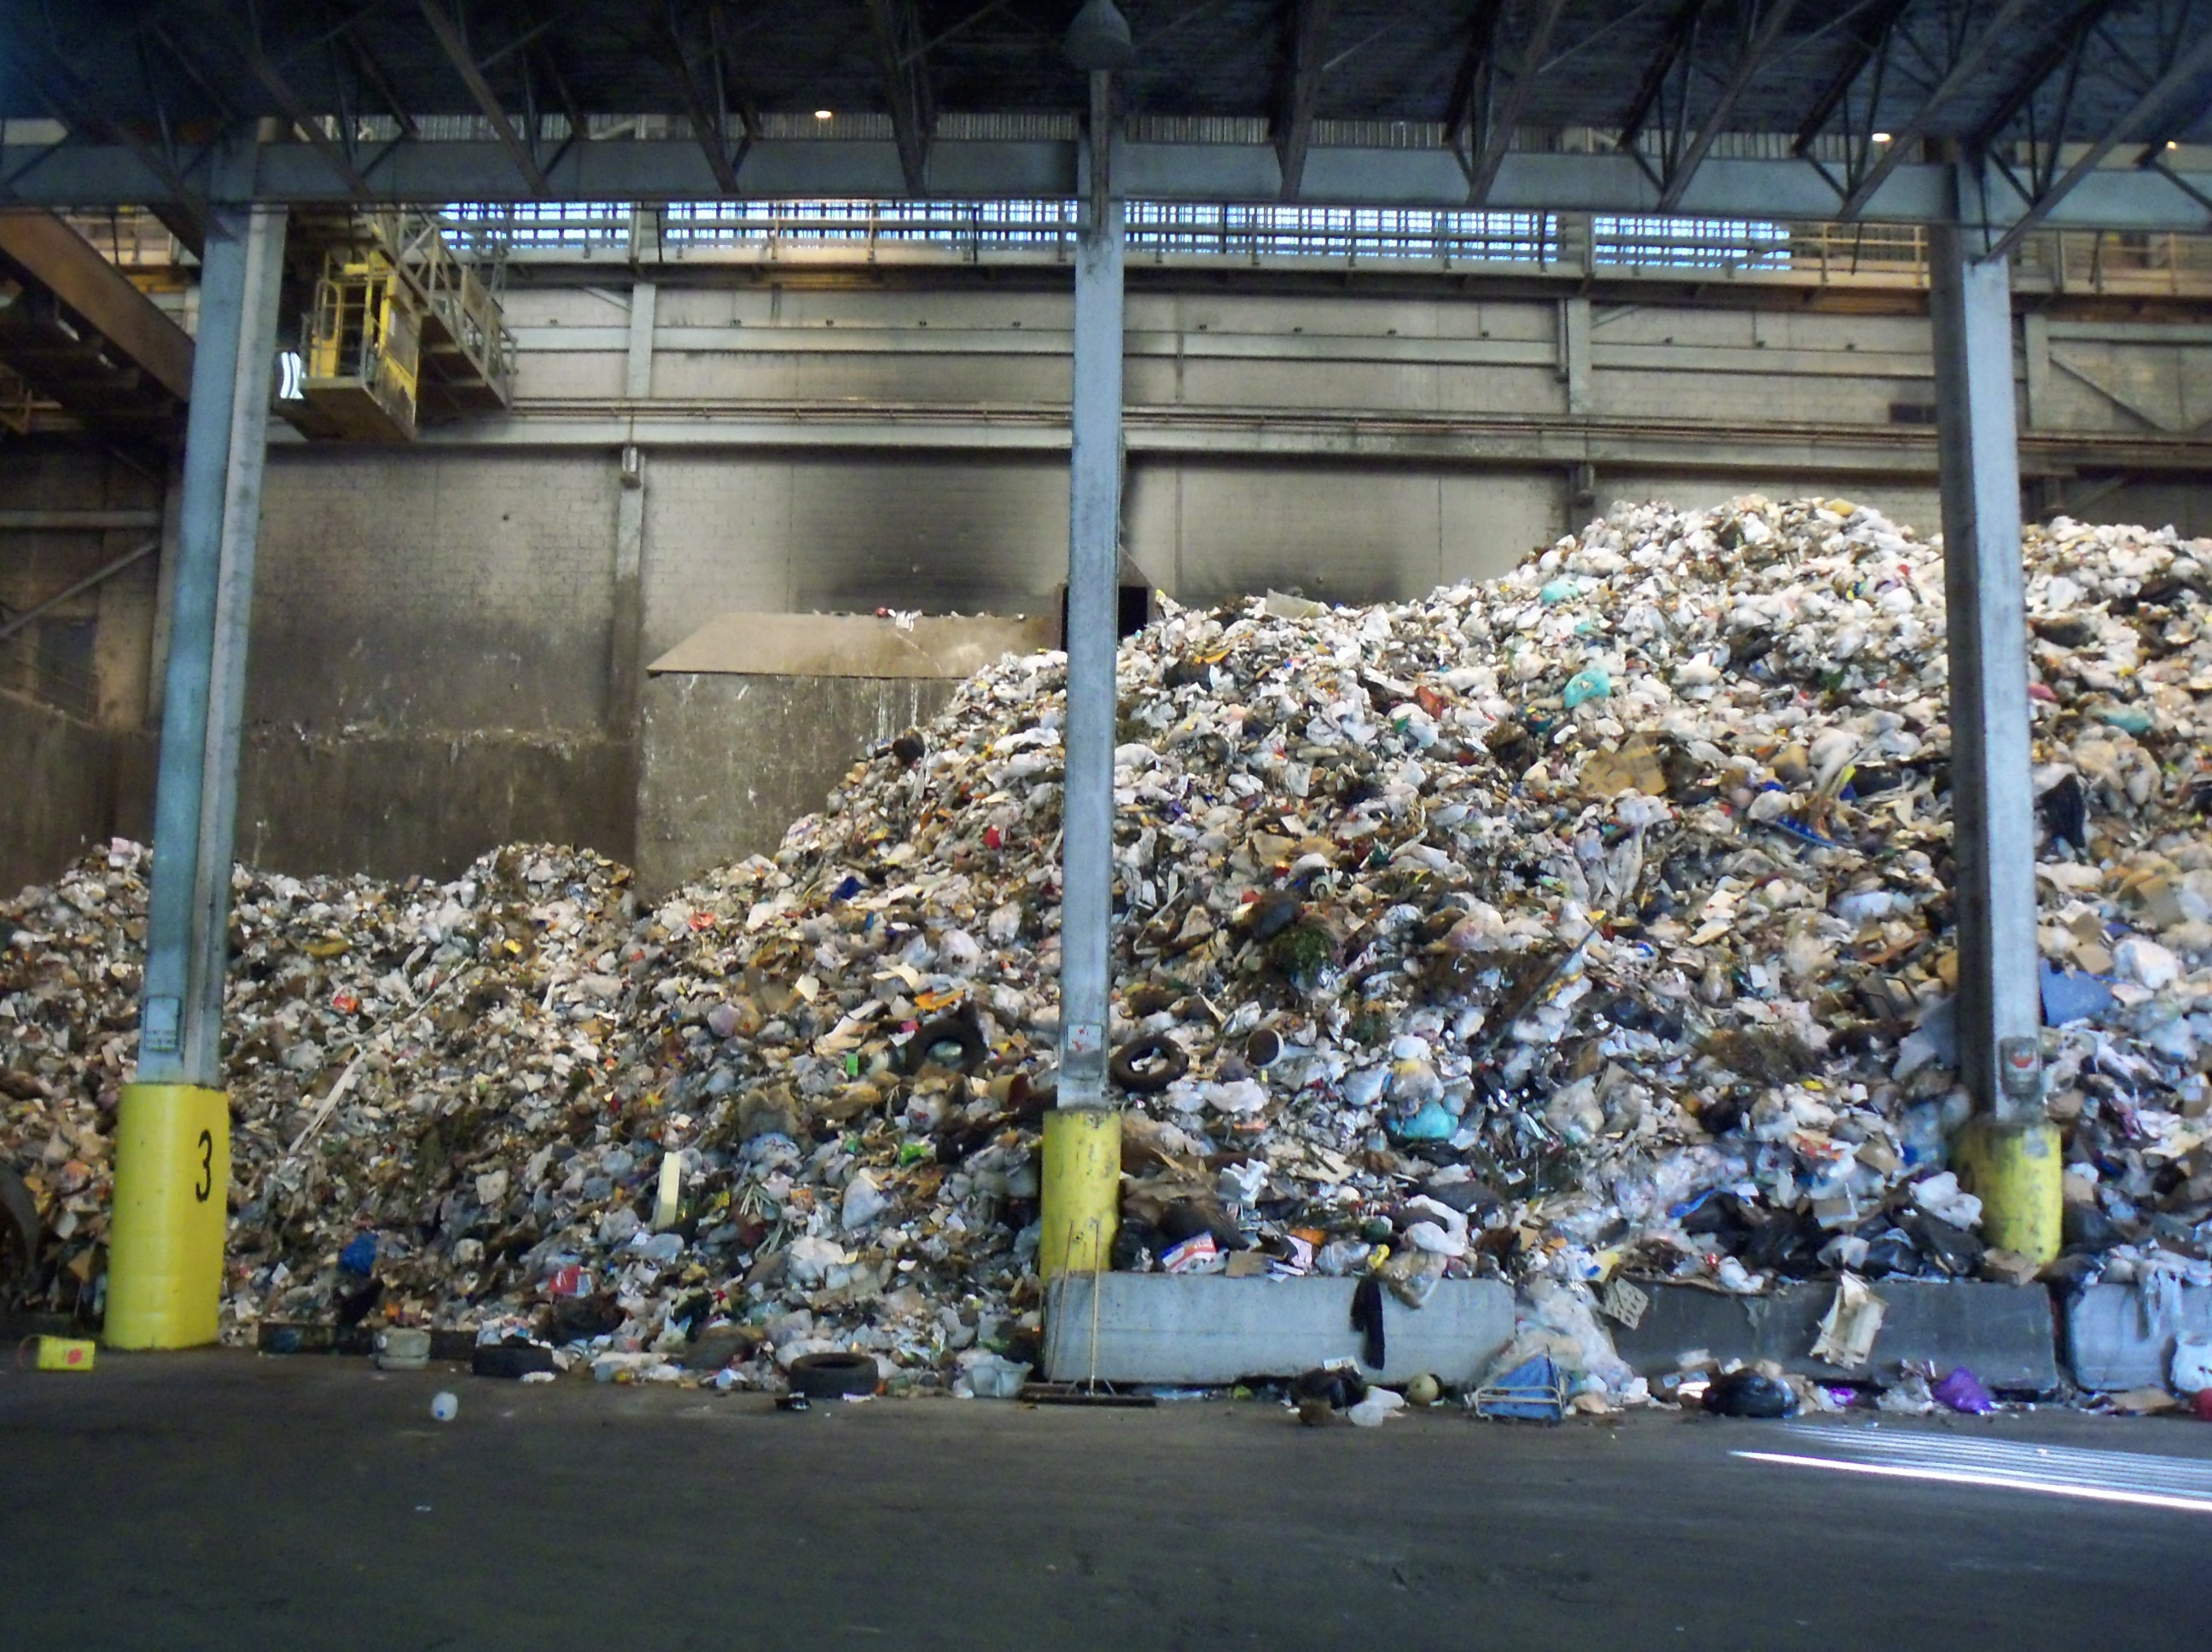 garbage piles up at steam plant